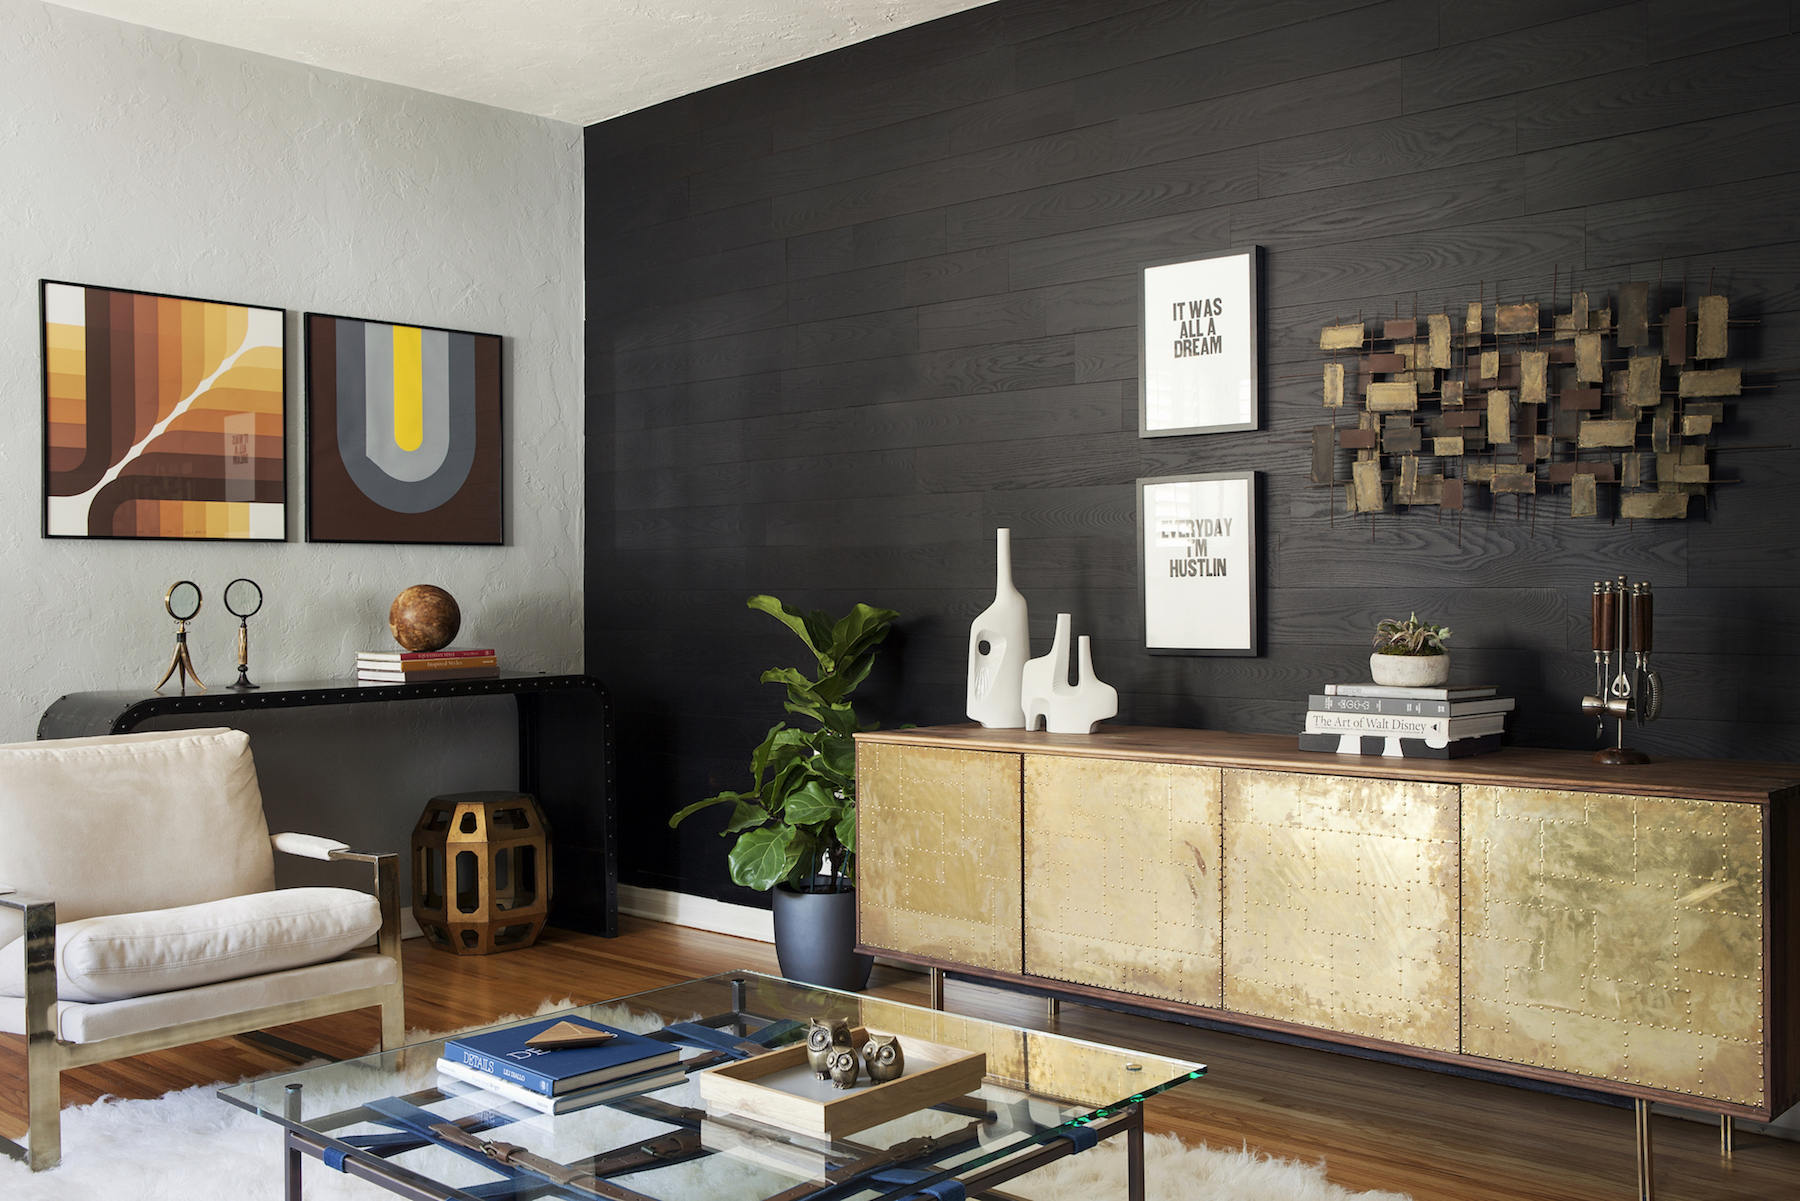 real wood decor stikwood is a peel and stick real wood decor rethink your walls Stikwood launches new Shou-Sugi-Ban inspired woodDesigner Kyle Schuneman  designs room using new Stikwood Charcoal finish.